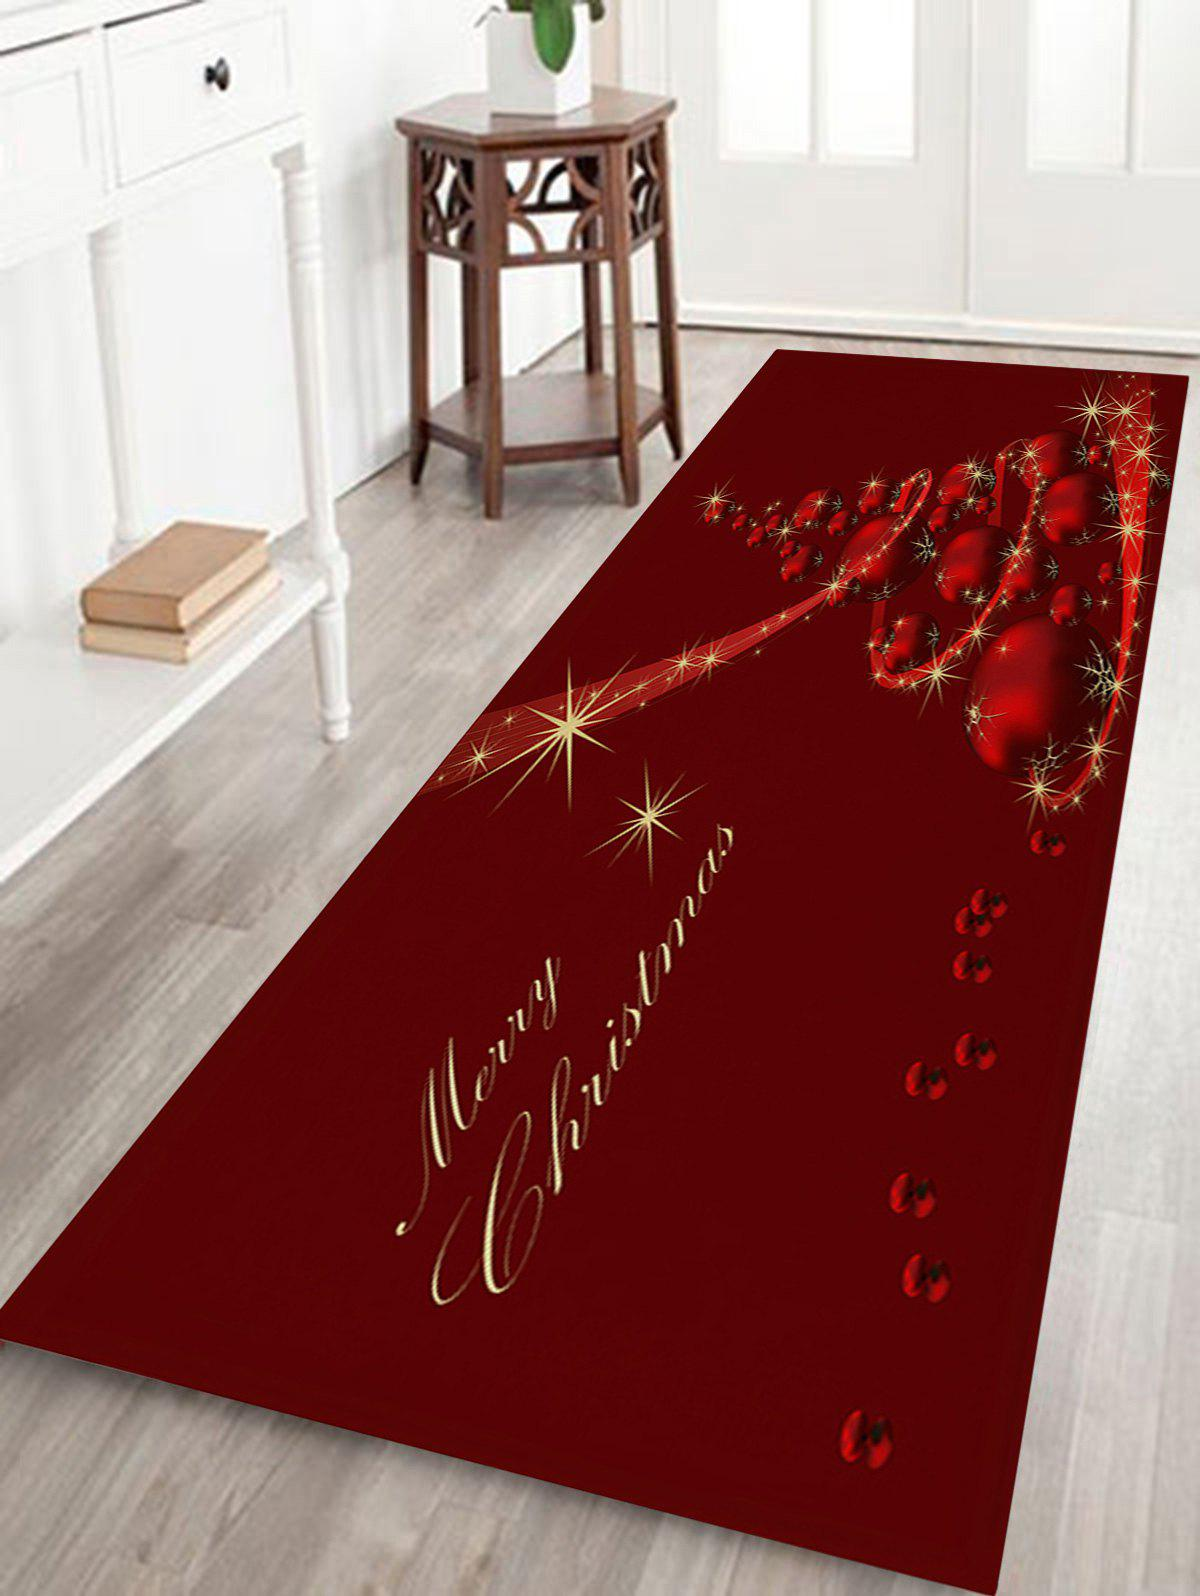 Christmas Balls Tree Print Coral Fleece Antiskid Bath RugHOME<br><br>Size: W24 INCH * L71 INCH; Color: DEEP RED; Products Type: Bath rugs; Materials: Coral FLeece; Pattern: Ball,Christmas Tree; Style: Festival; Shape: Rectangular; Package Contents: 1 x Rug;